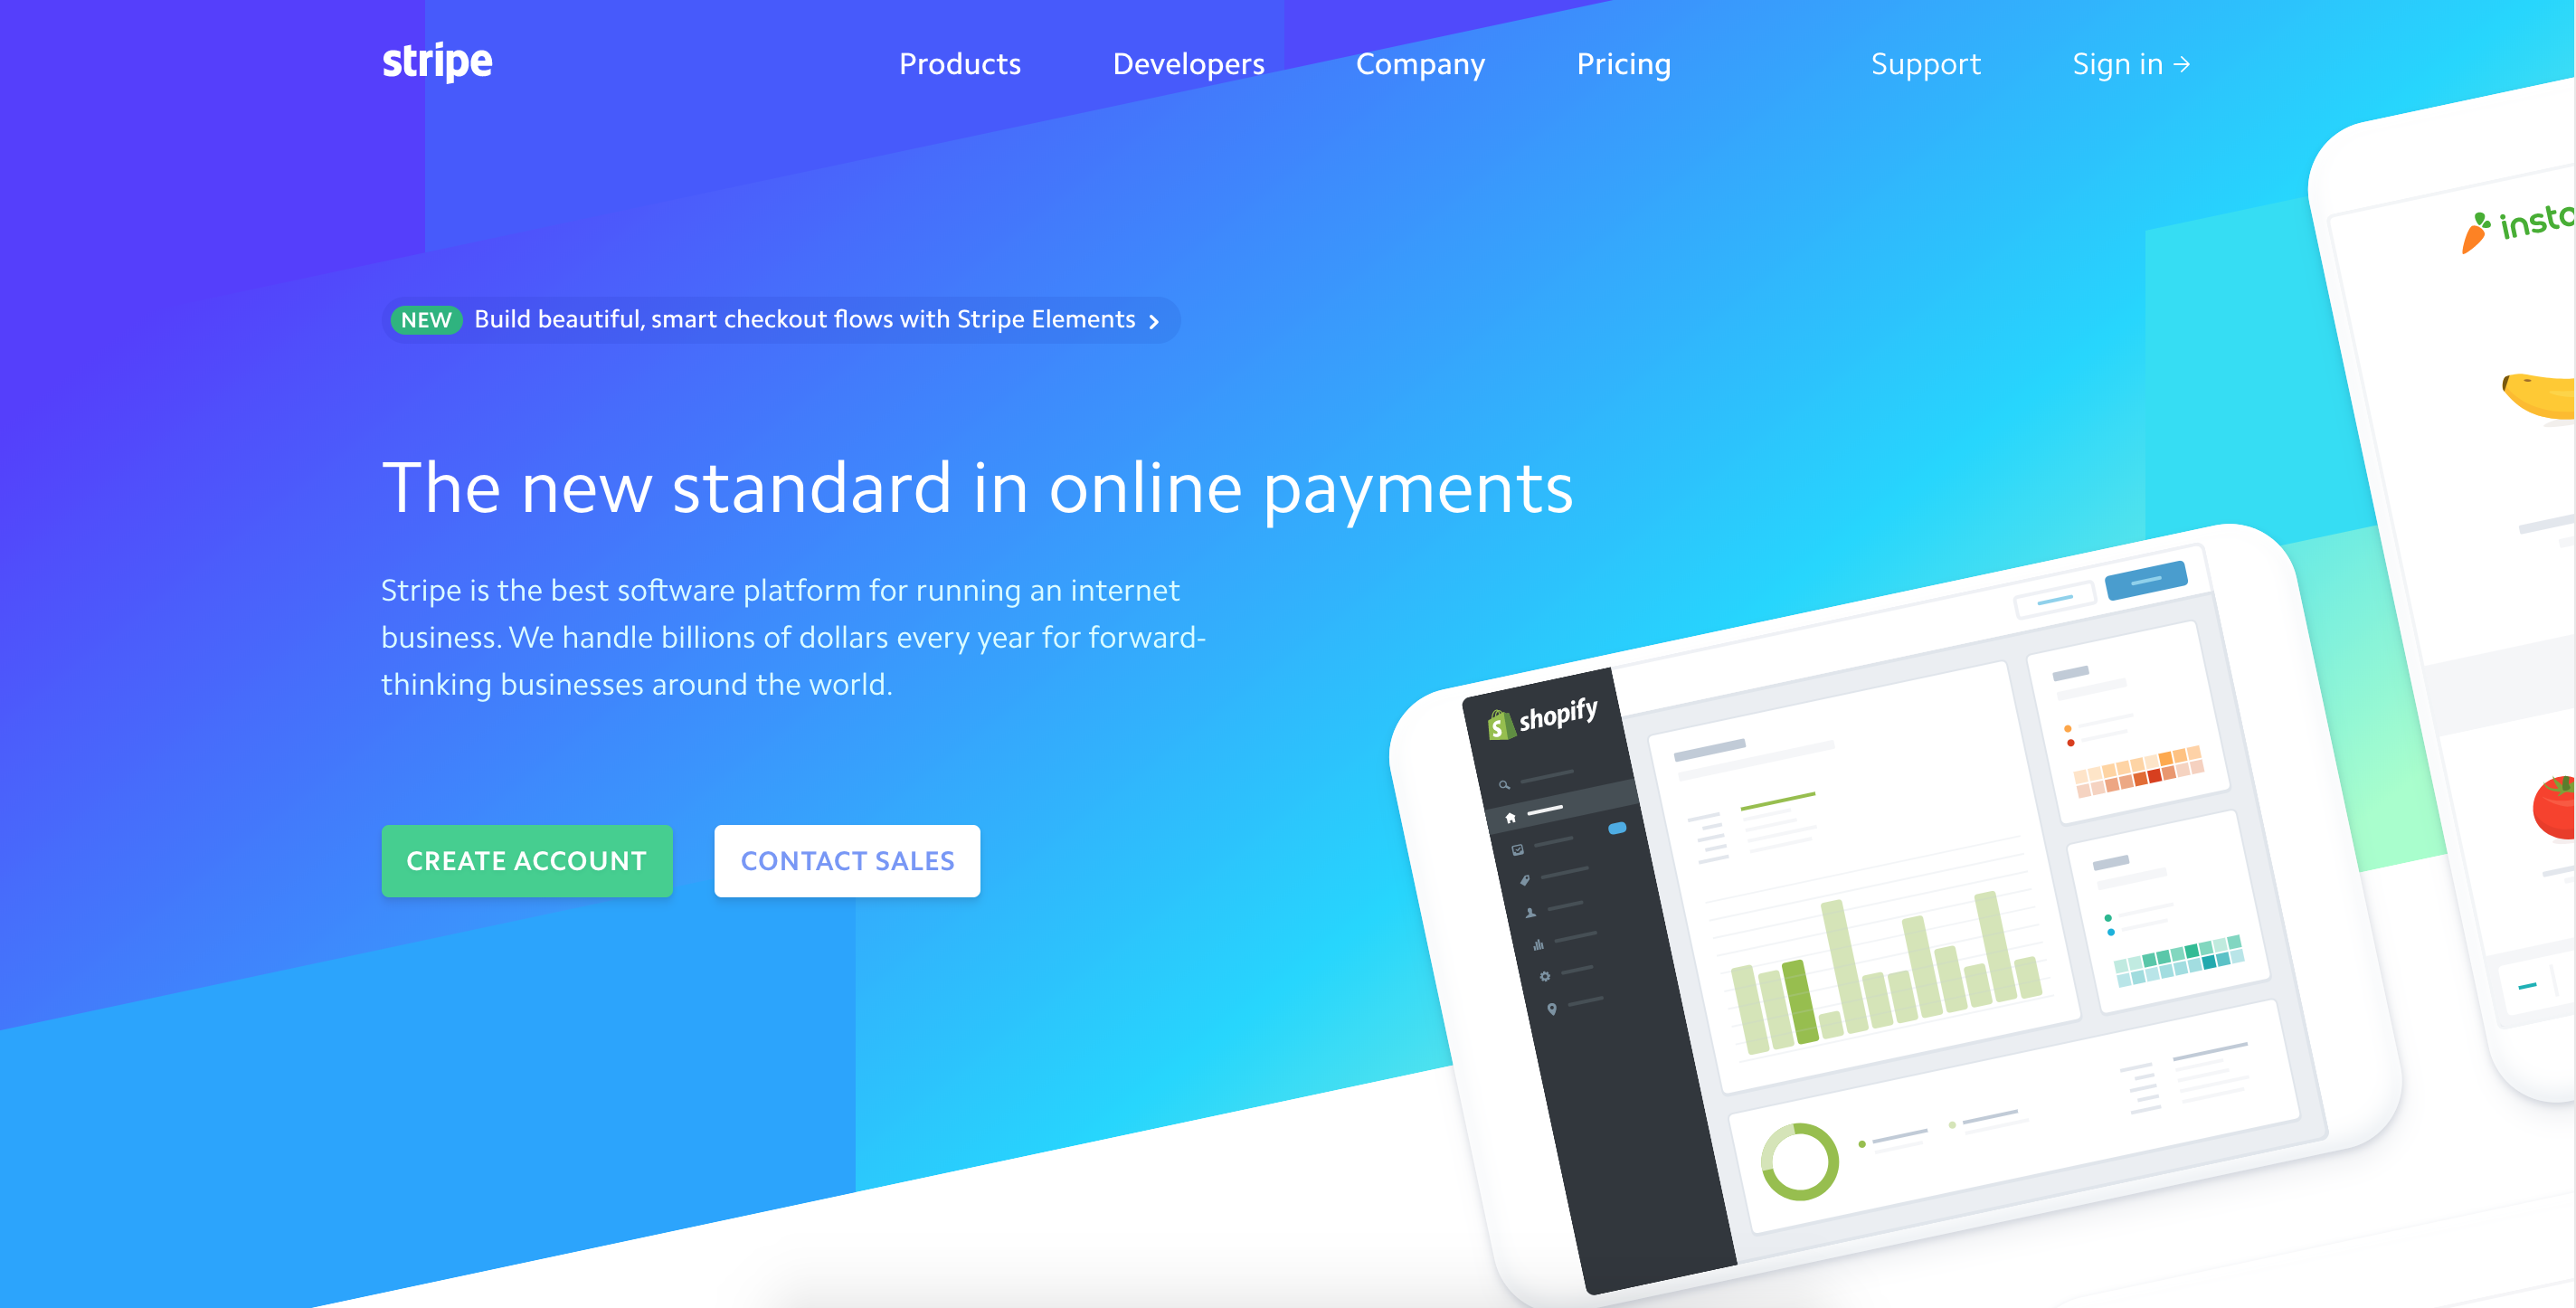 Stripe's website